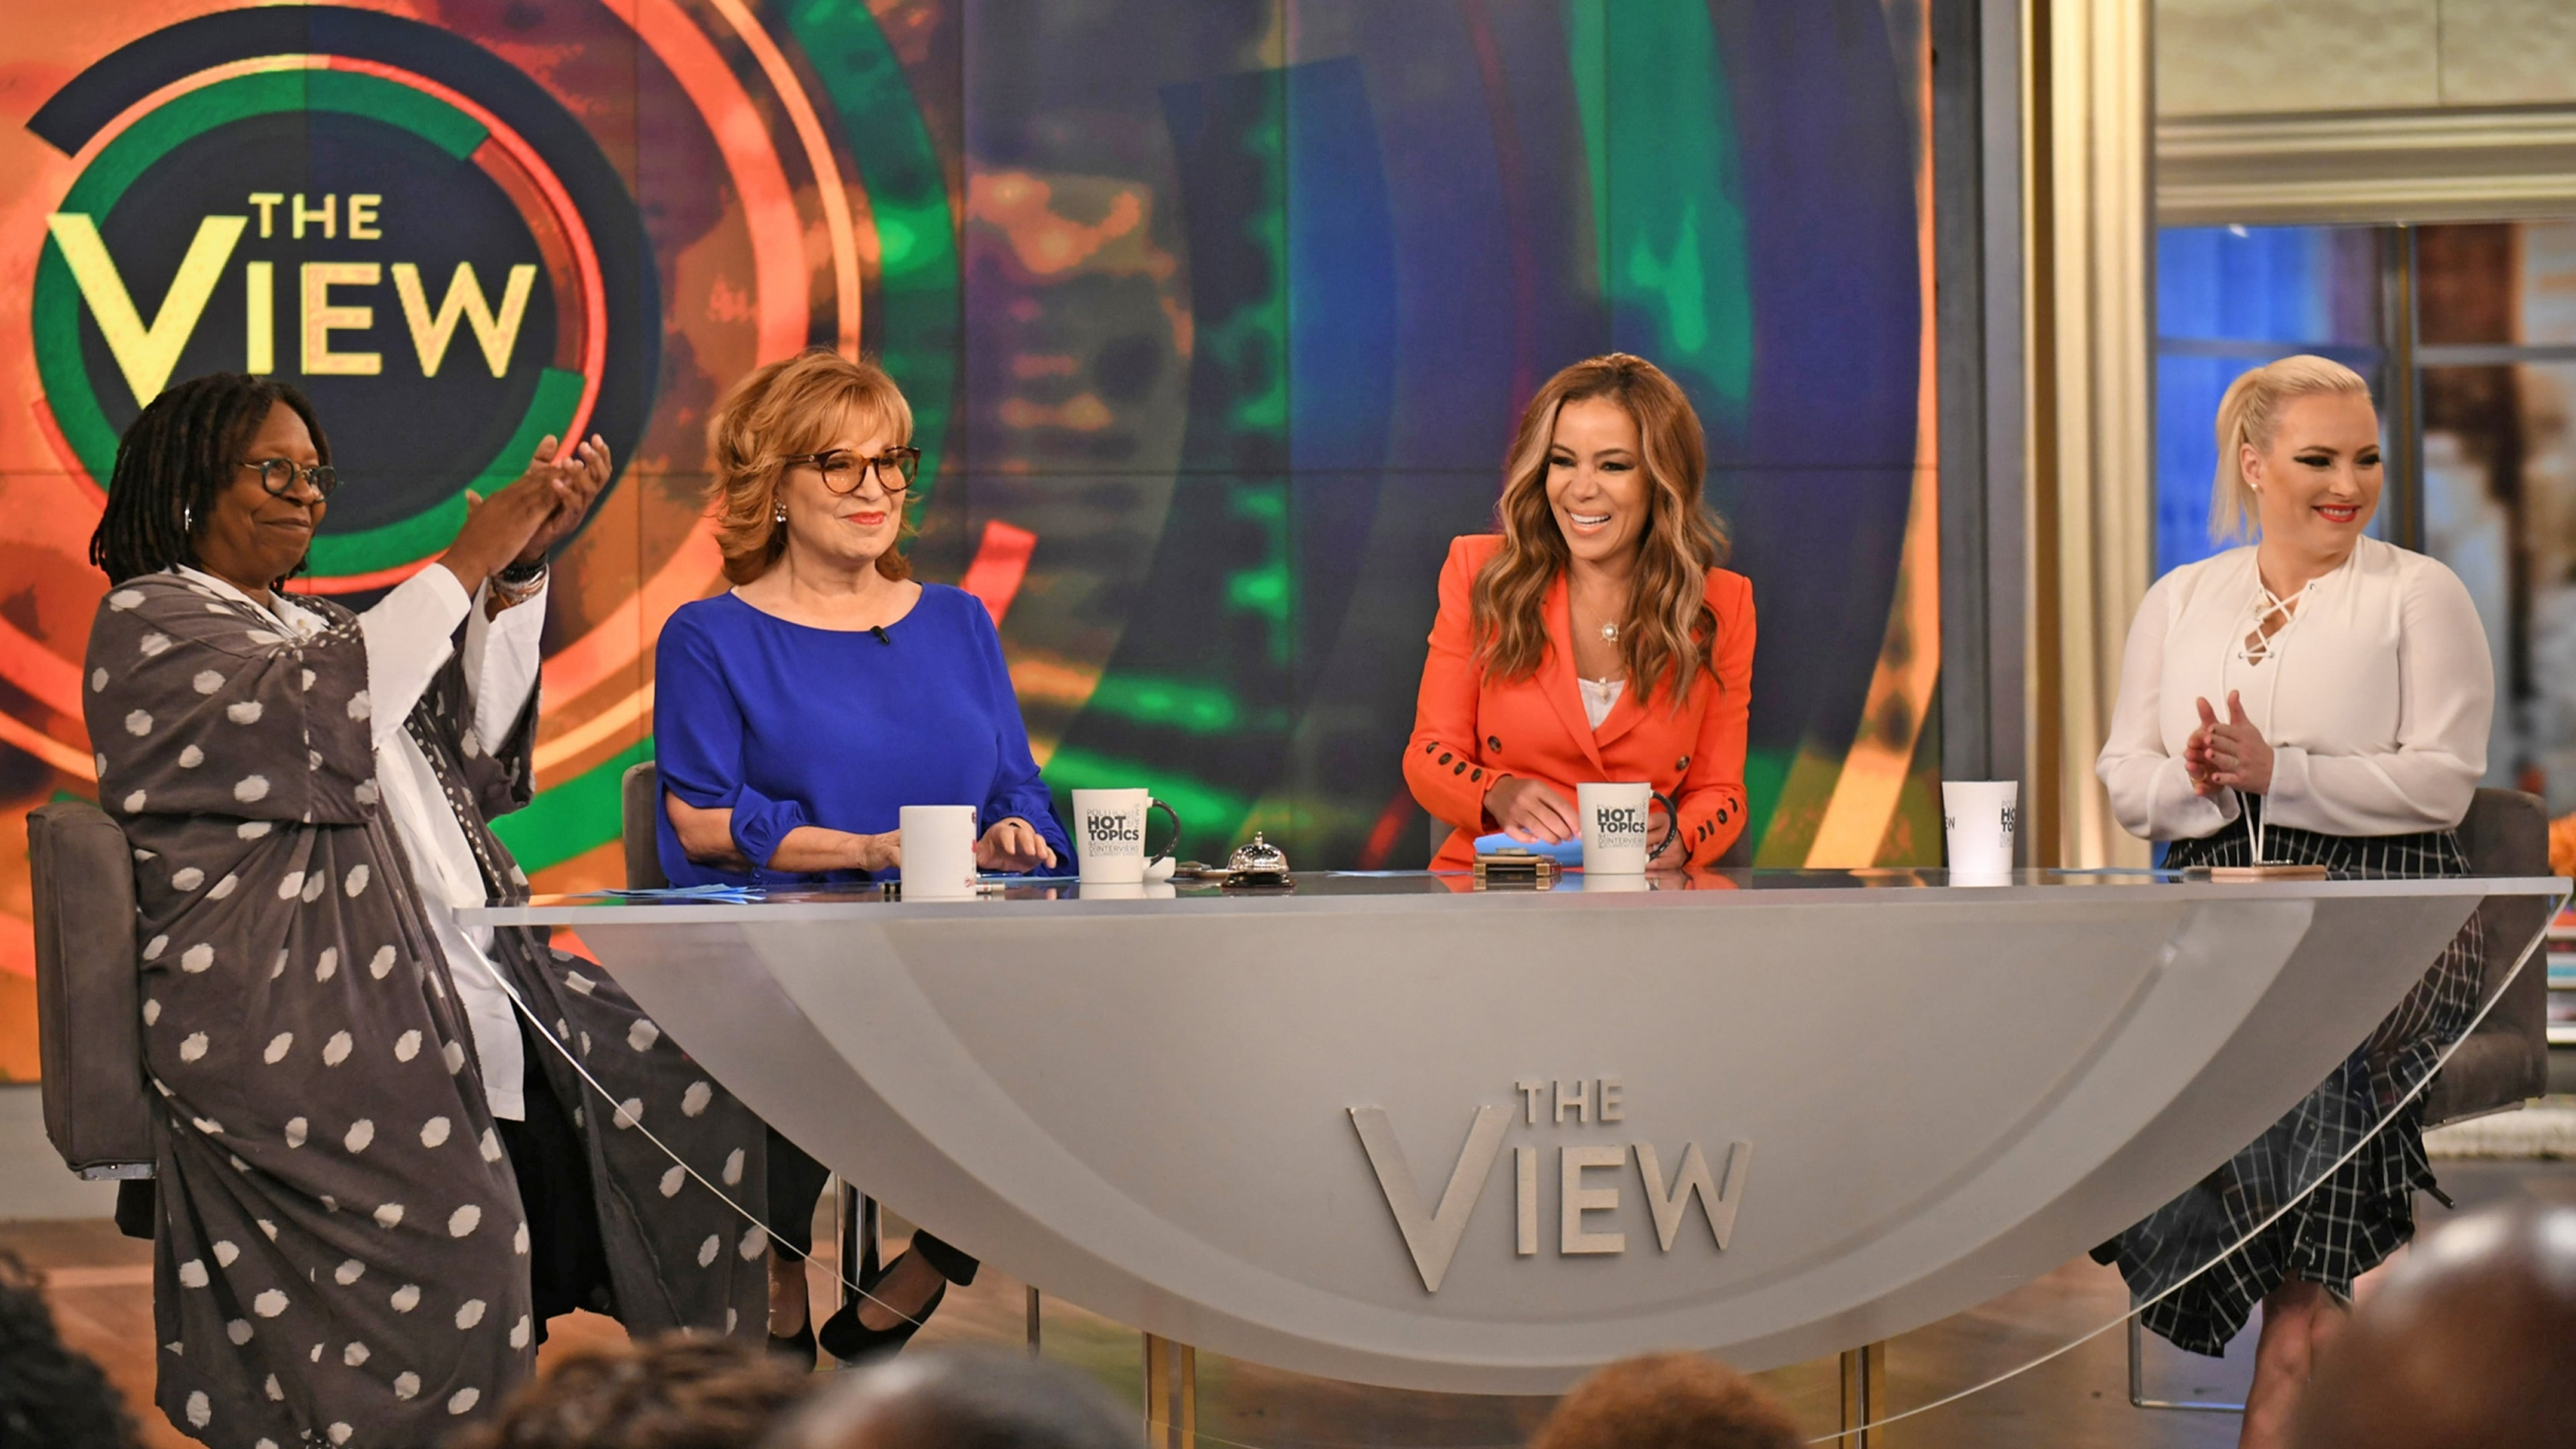 The View - Season 3 Episode 260 : Season 3, Episode 260